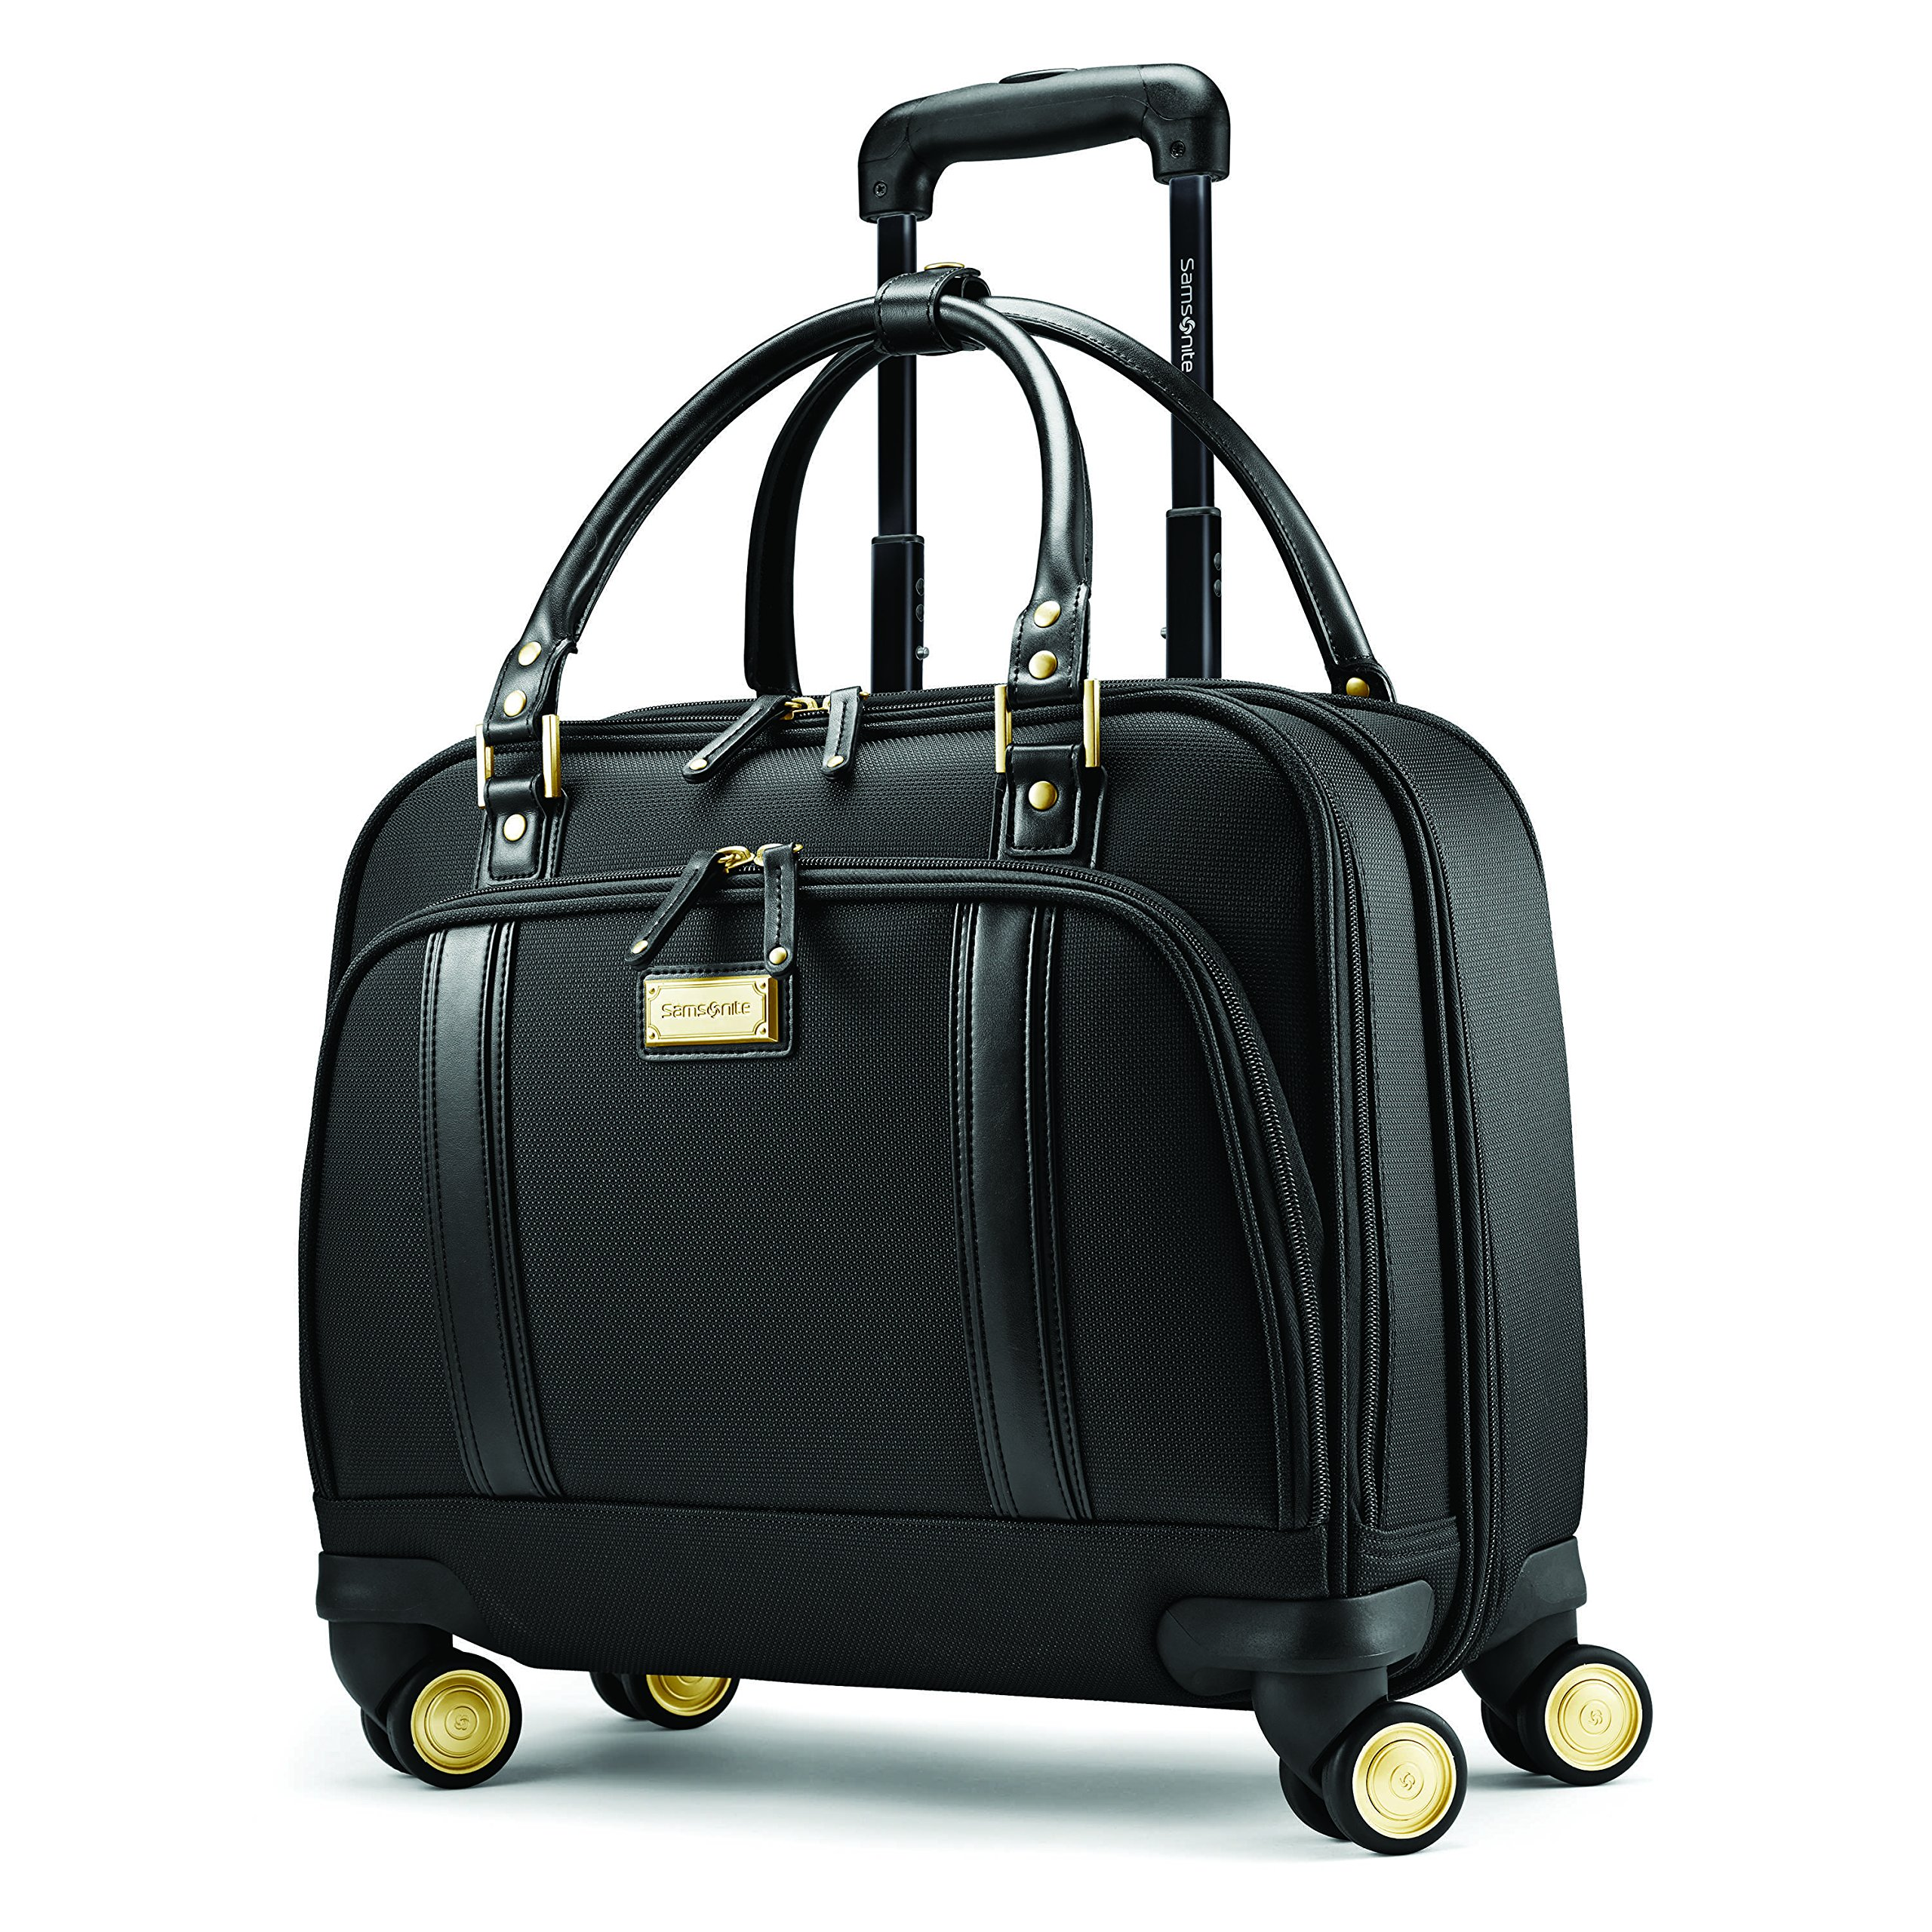 Samsonite Luggage Women's Spinner Mobile Office (One Size, Black/Gold) by Samsonite